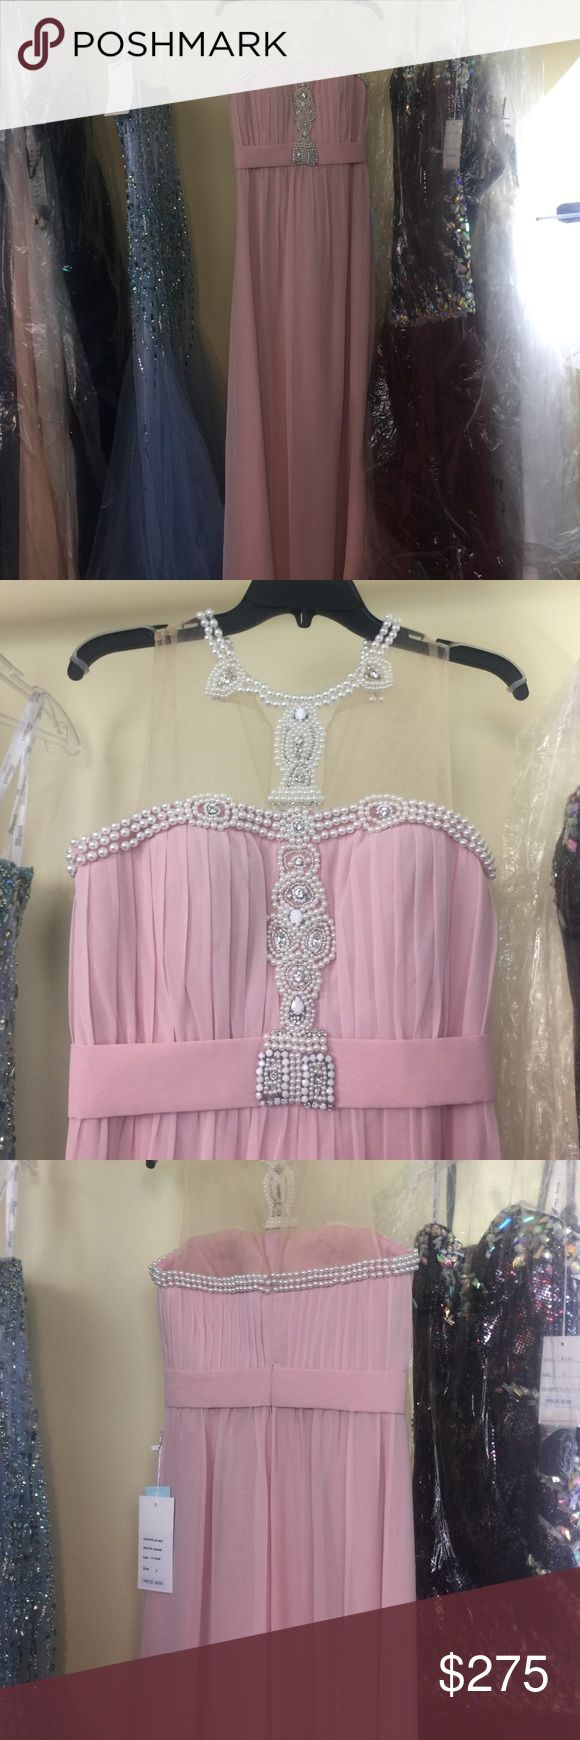 New! Never Worn with Tags Kathy Hilton Dress 👗👗 Long pink dress with pearl accents around neck, chest, and back. Kathy Hilton Dresses